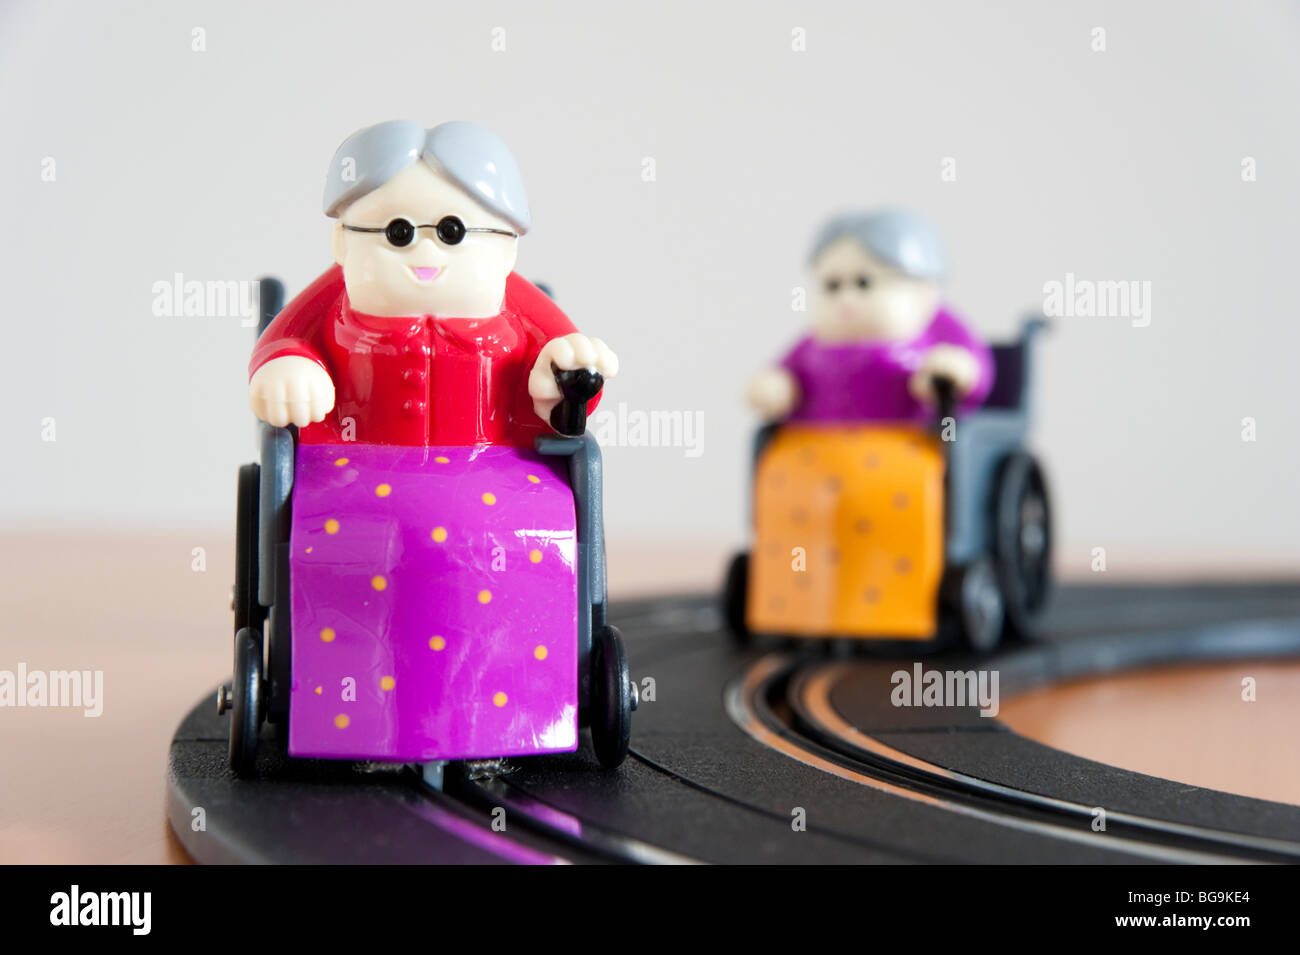 Scalextric imitation of active elderly women racing round track - Stock Image